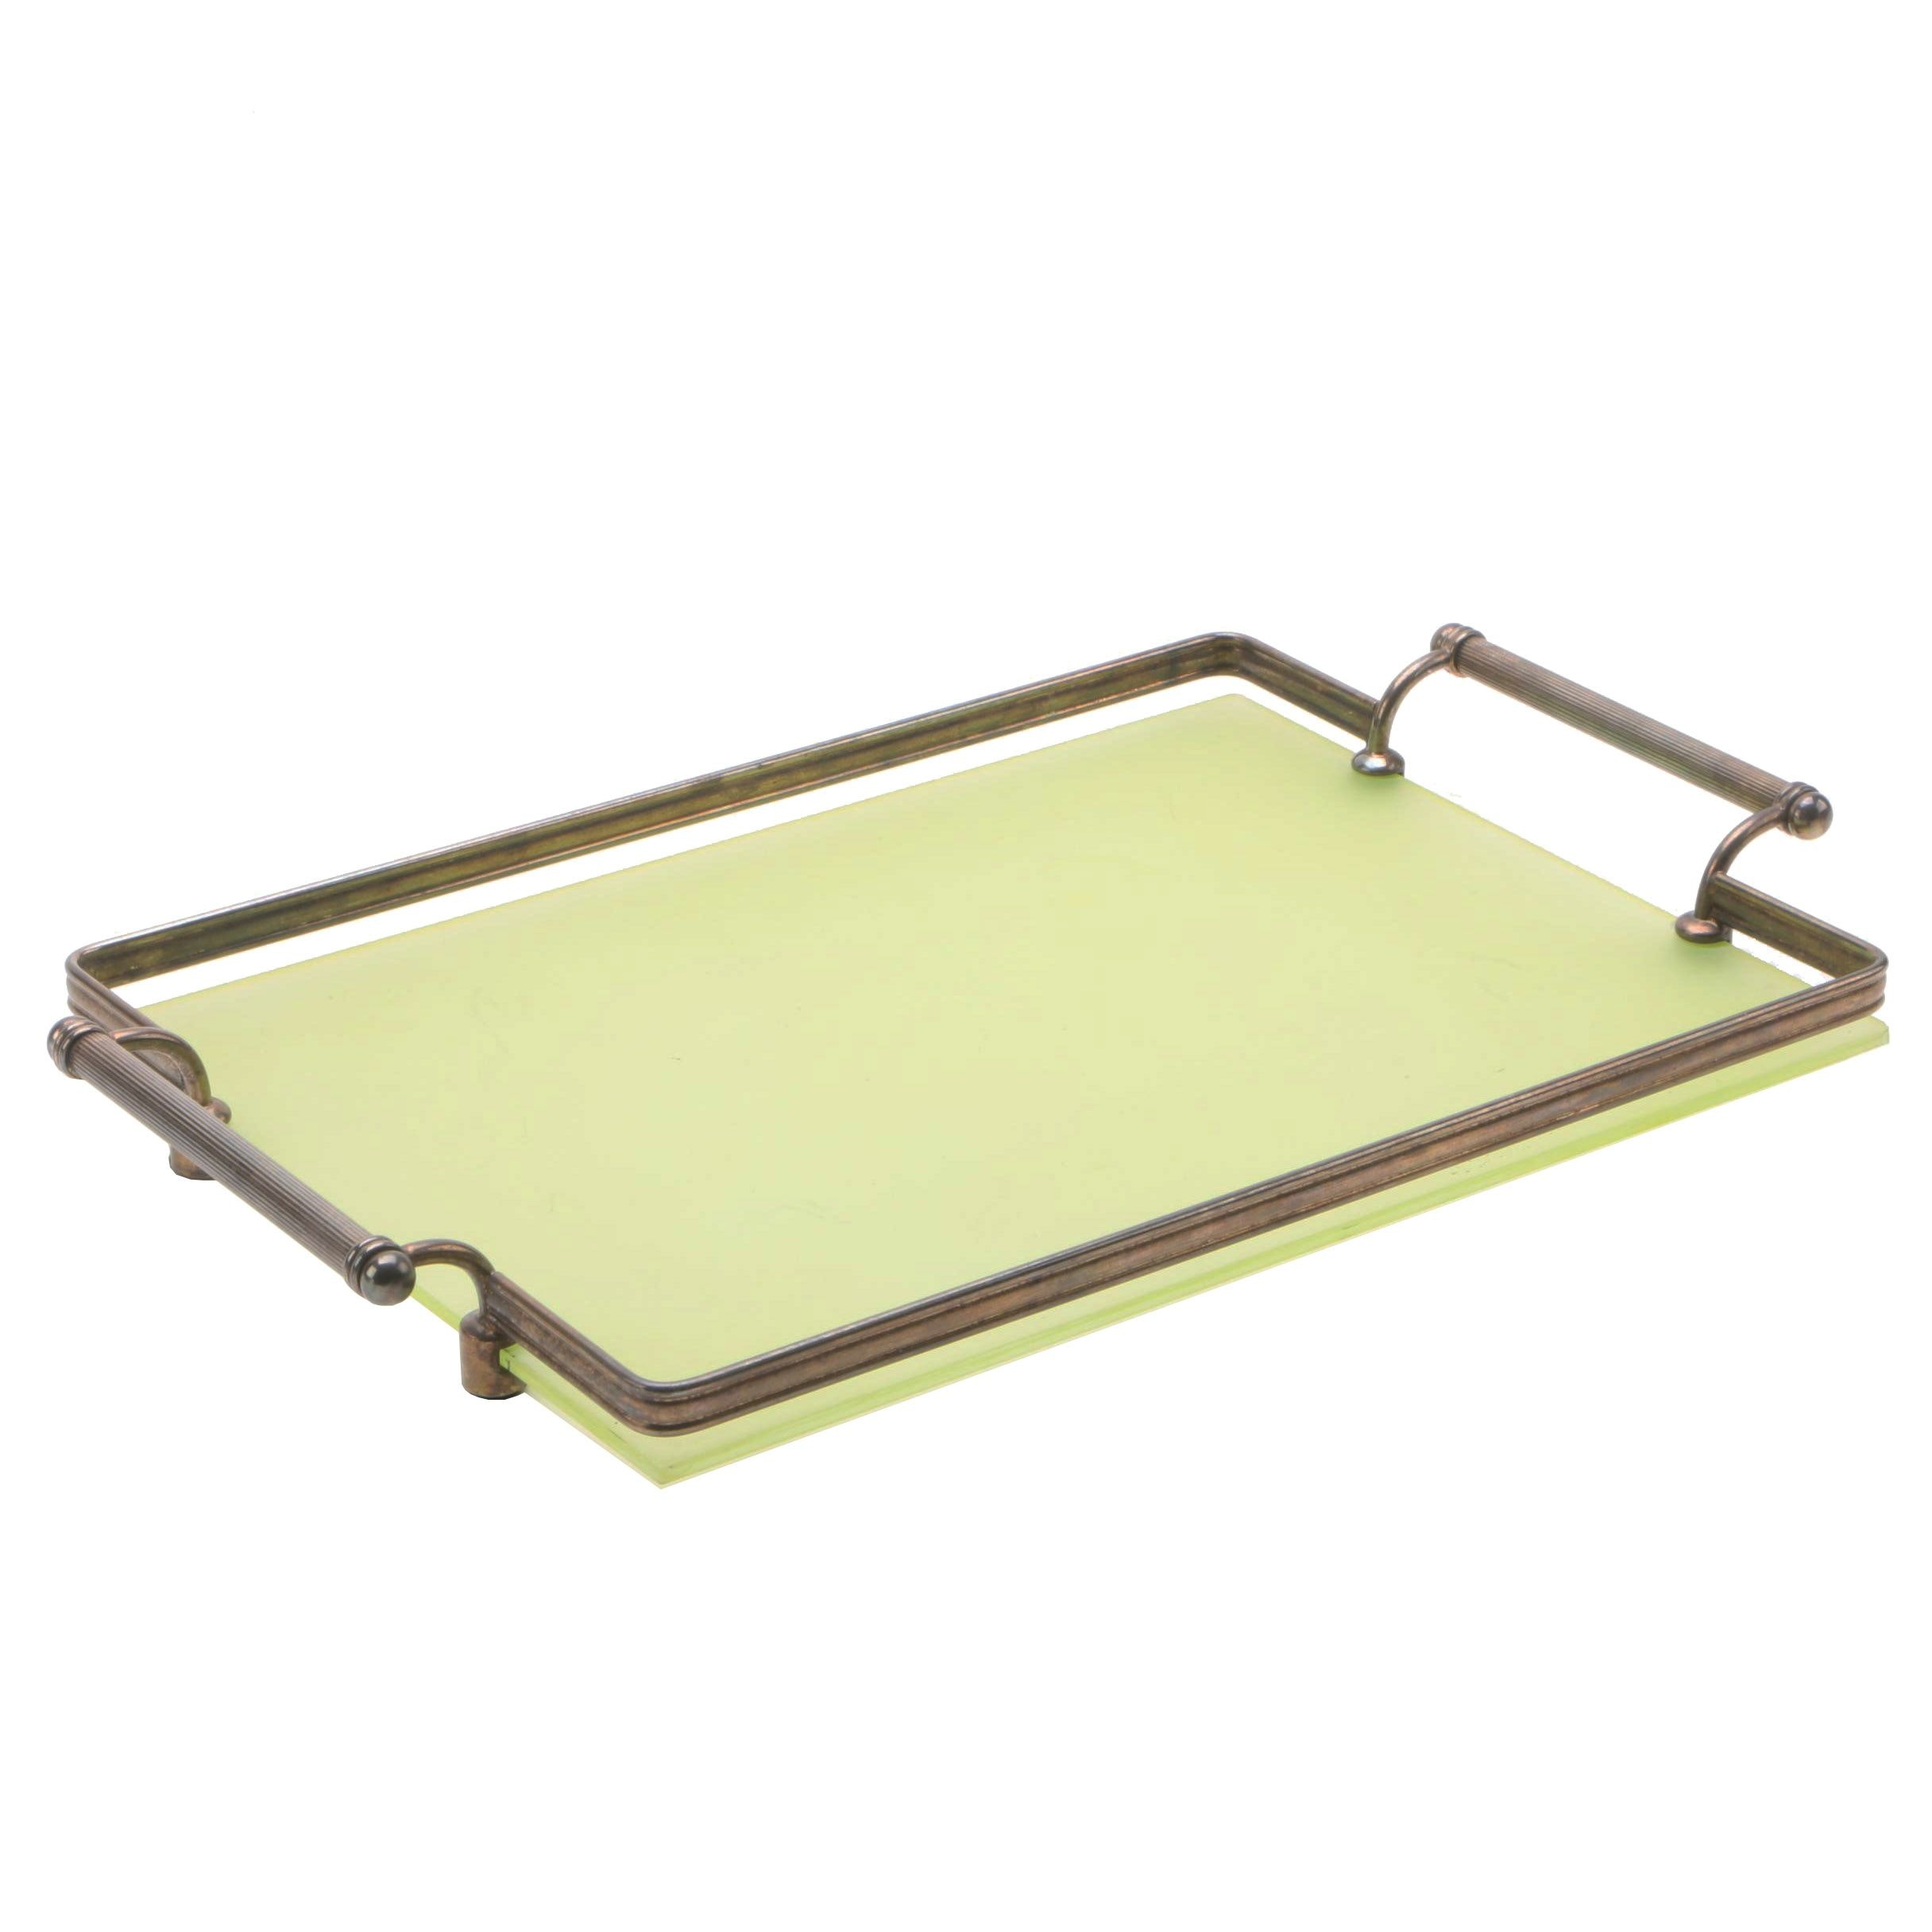 Vintage Frosted Green Glass Serving Tray with Silver Plate Frame